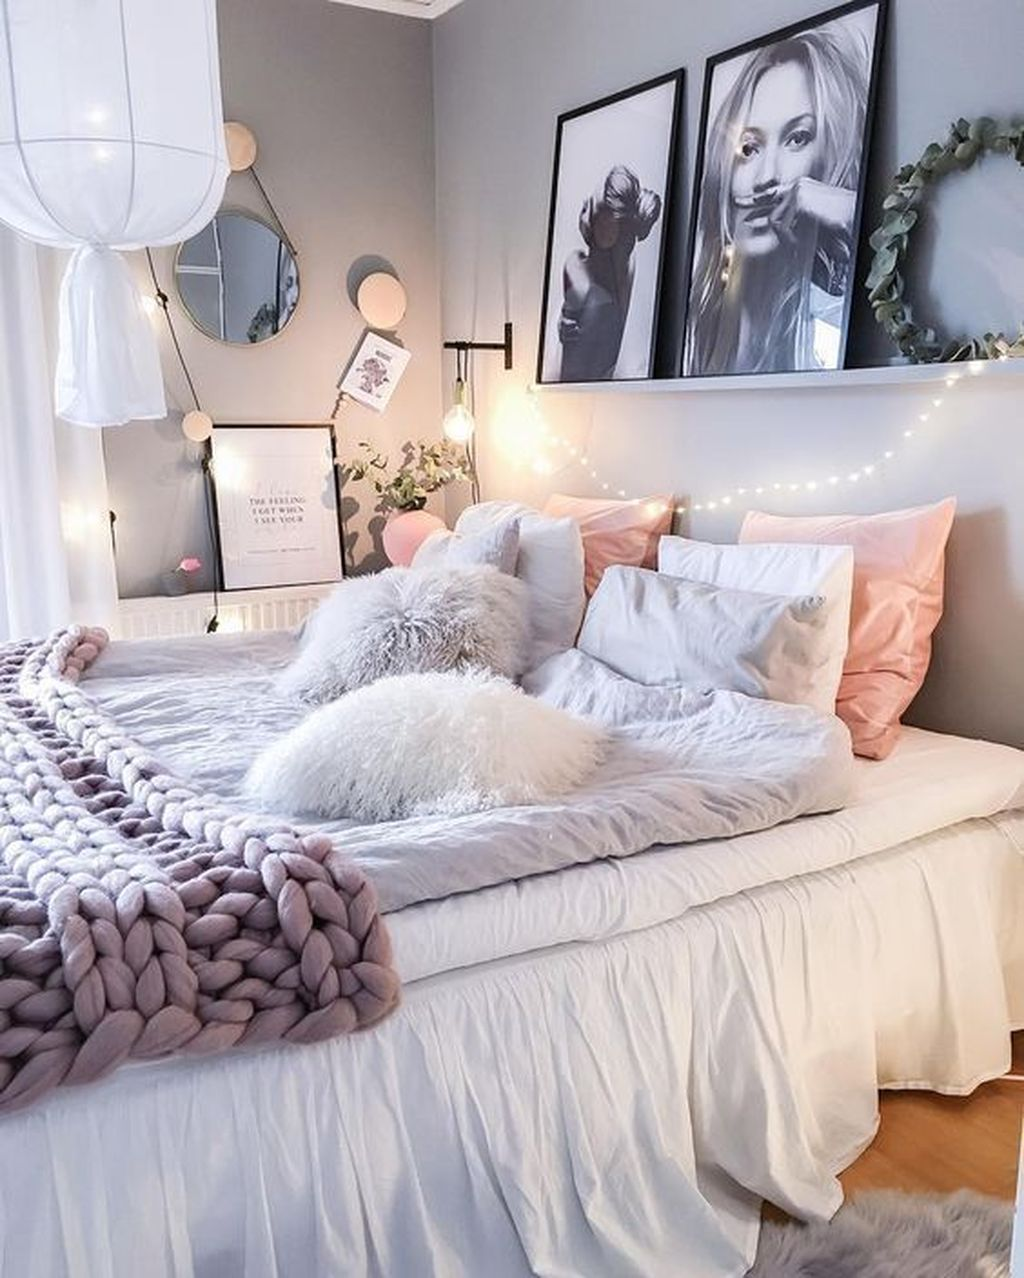 Best Teenager Bedroom Ideas With Awesome Decor 23